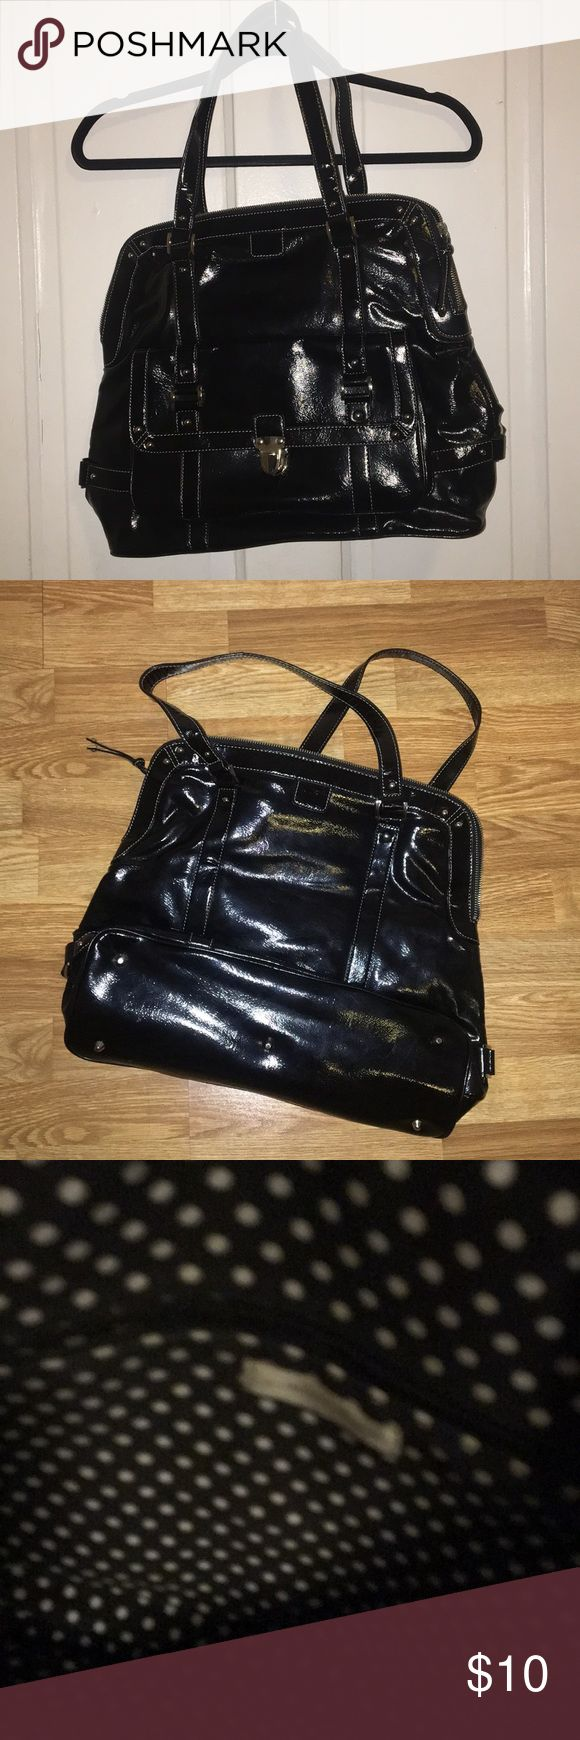 Patent Leather Tote Patent Leather Tote (faux) Pocket on outside Two pockets on the Inside Perfect for your laptop and notebook along with other purse essentials  Originally purchased at Target Bags Totes